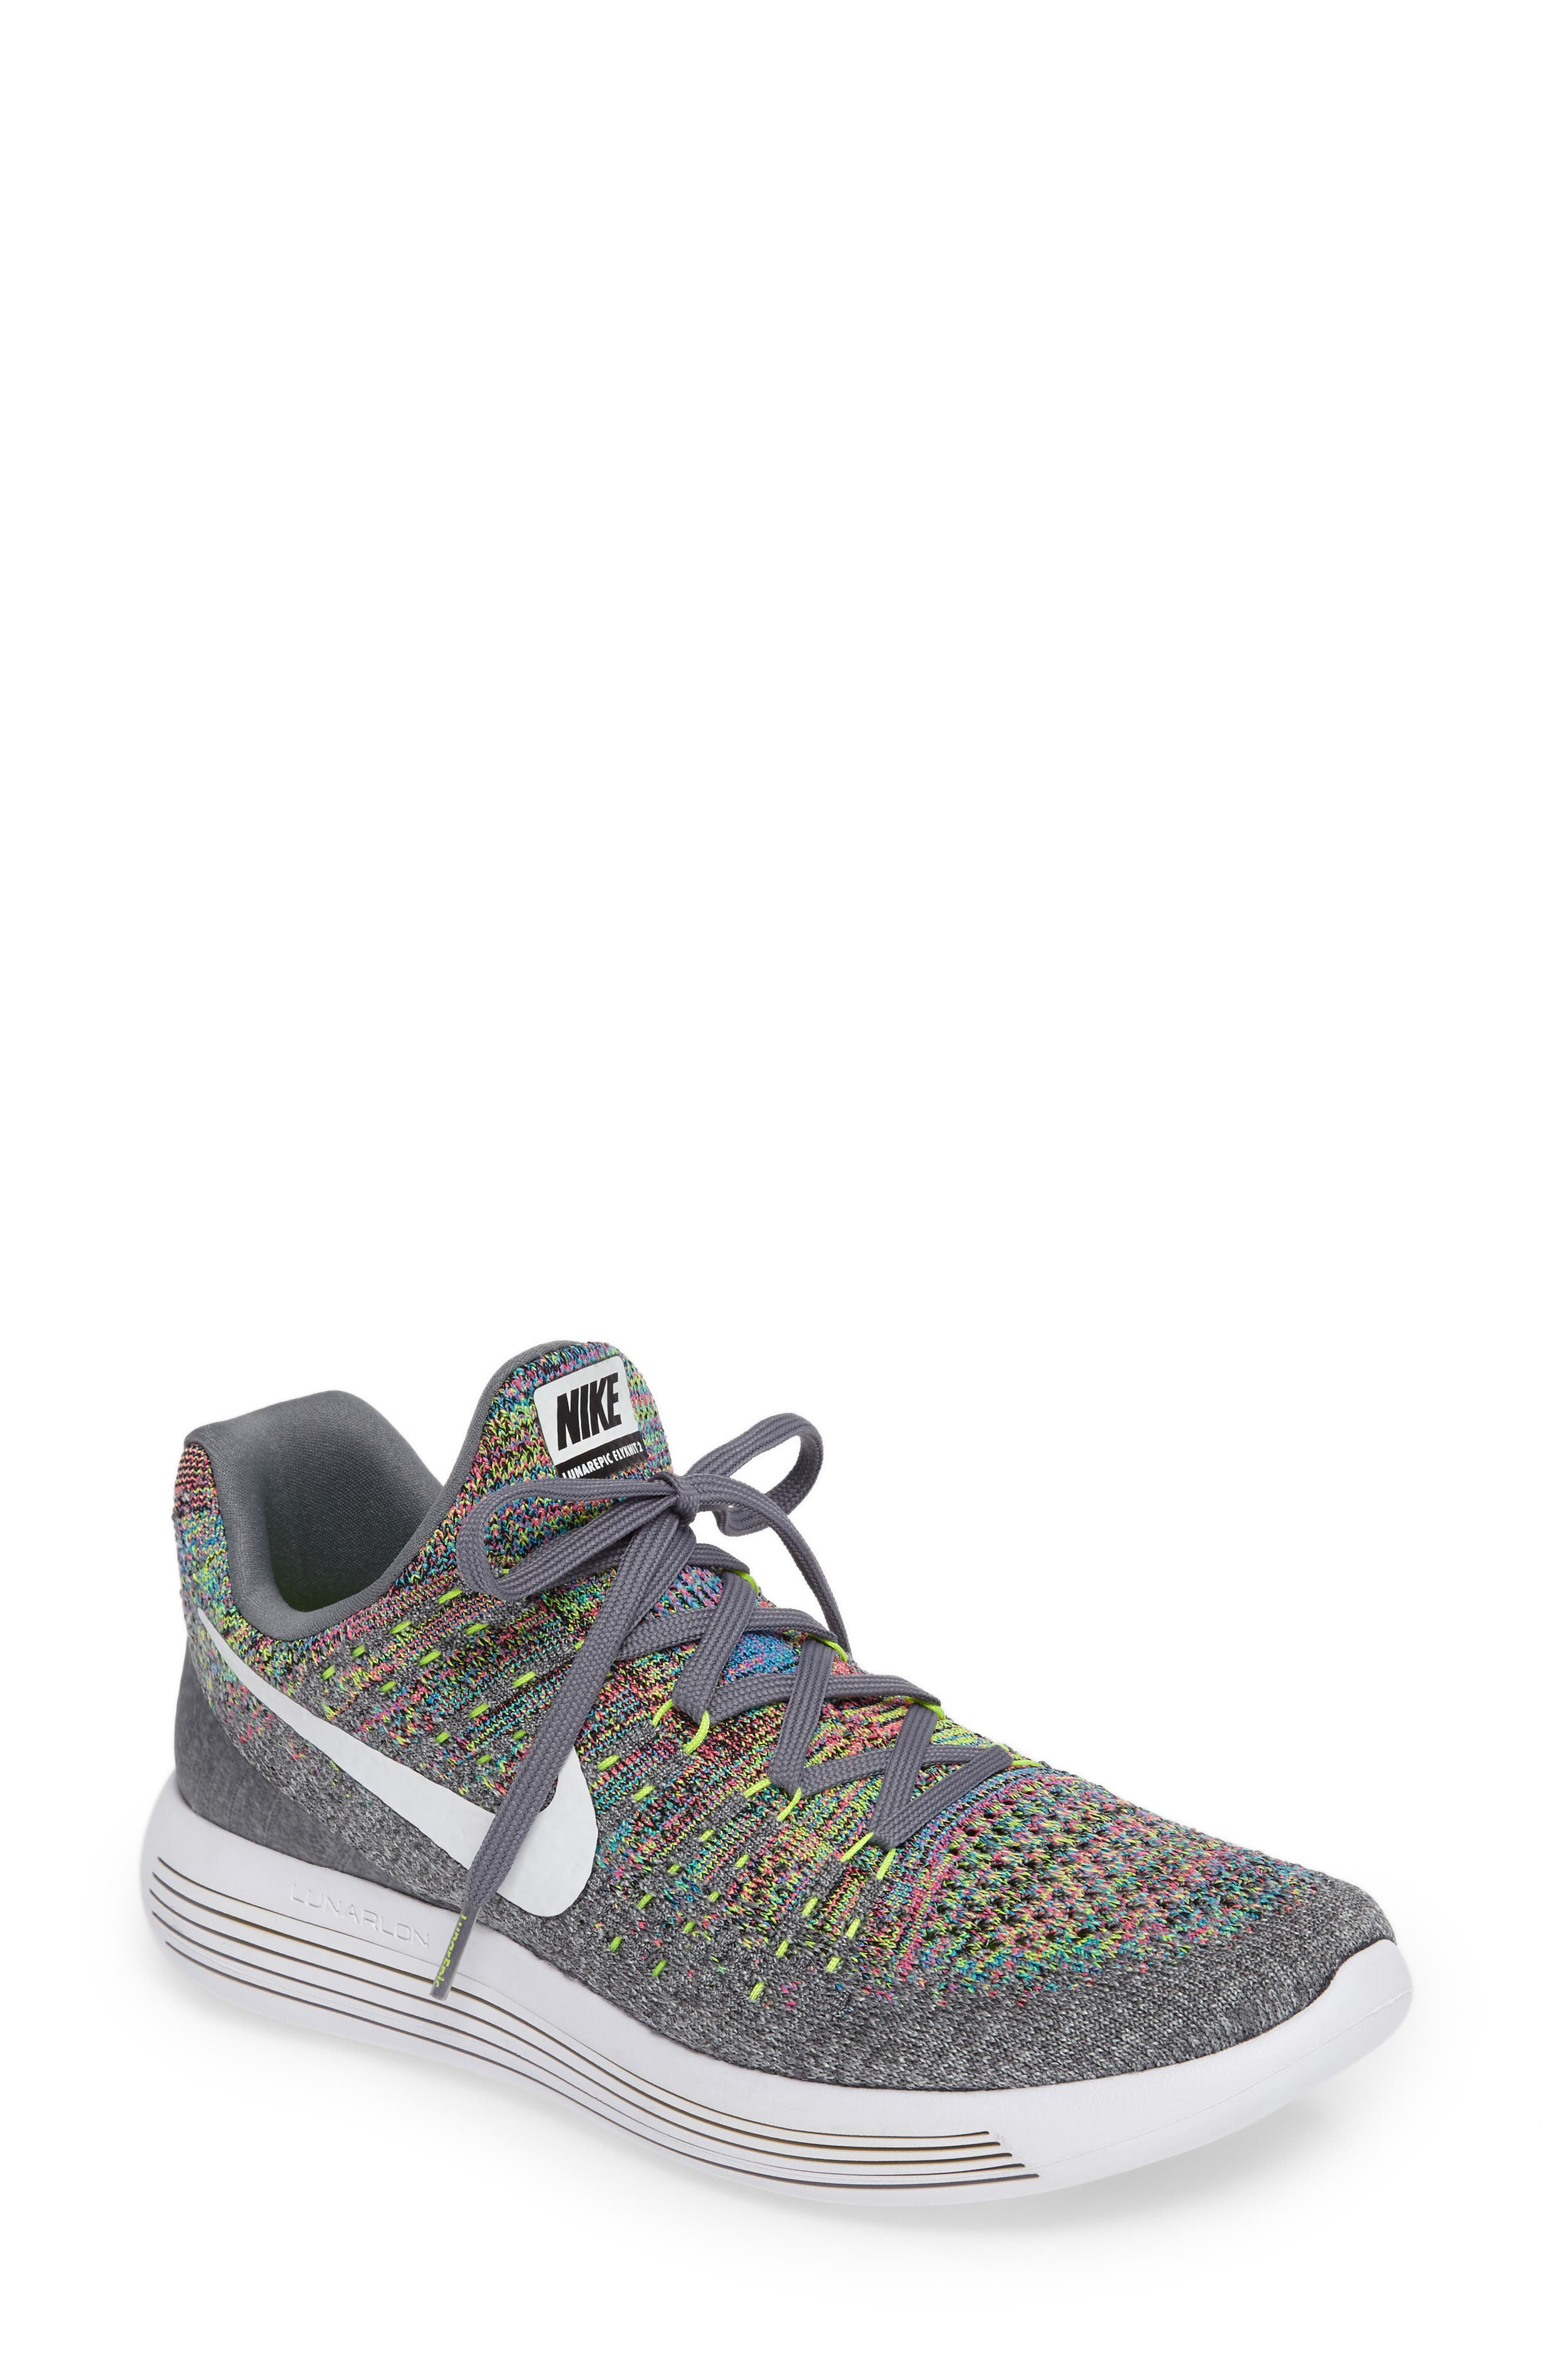 LunarEpic Low Flyknit 2 Running Shoe,                             Main thumbnail 1, color,                             Grey/ White/ Volt/ Blue Glow